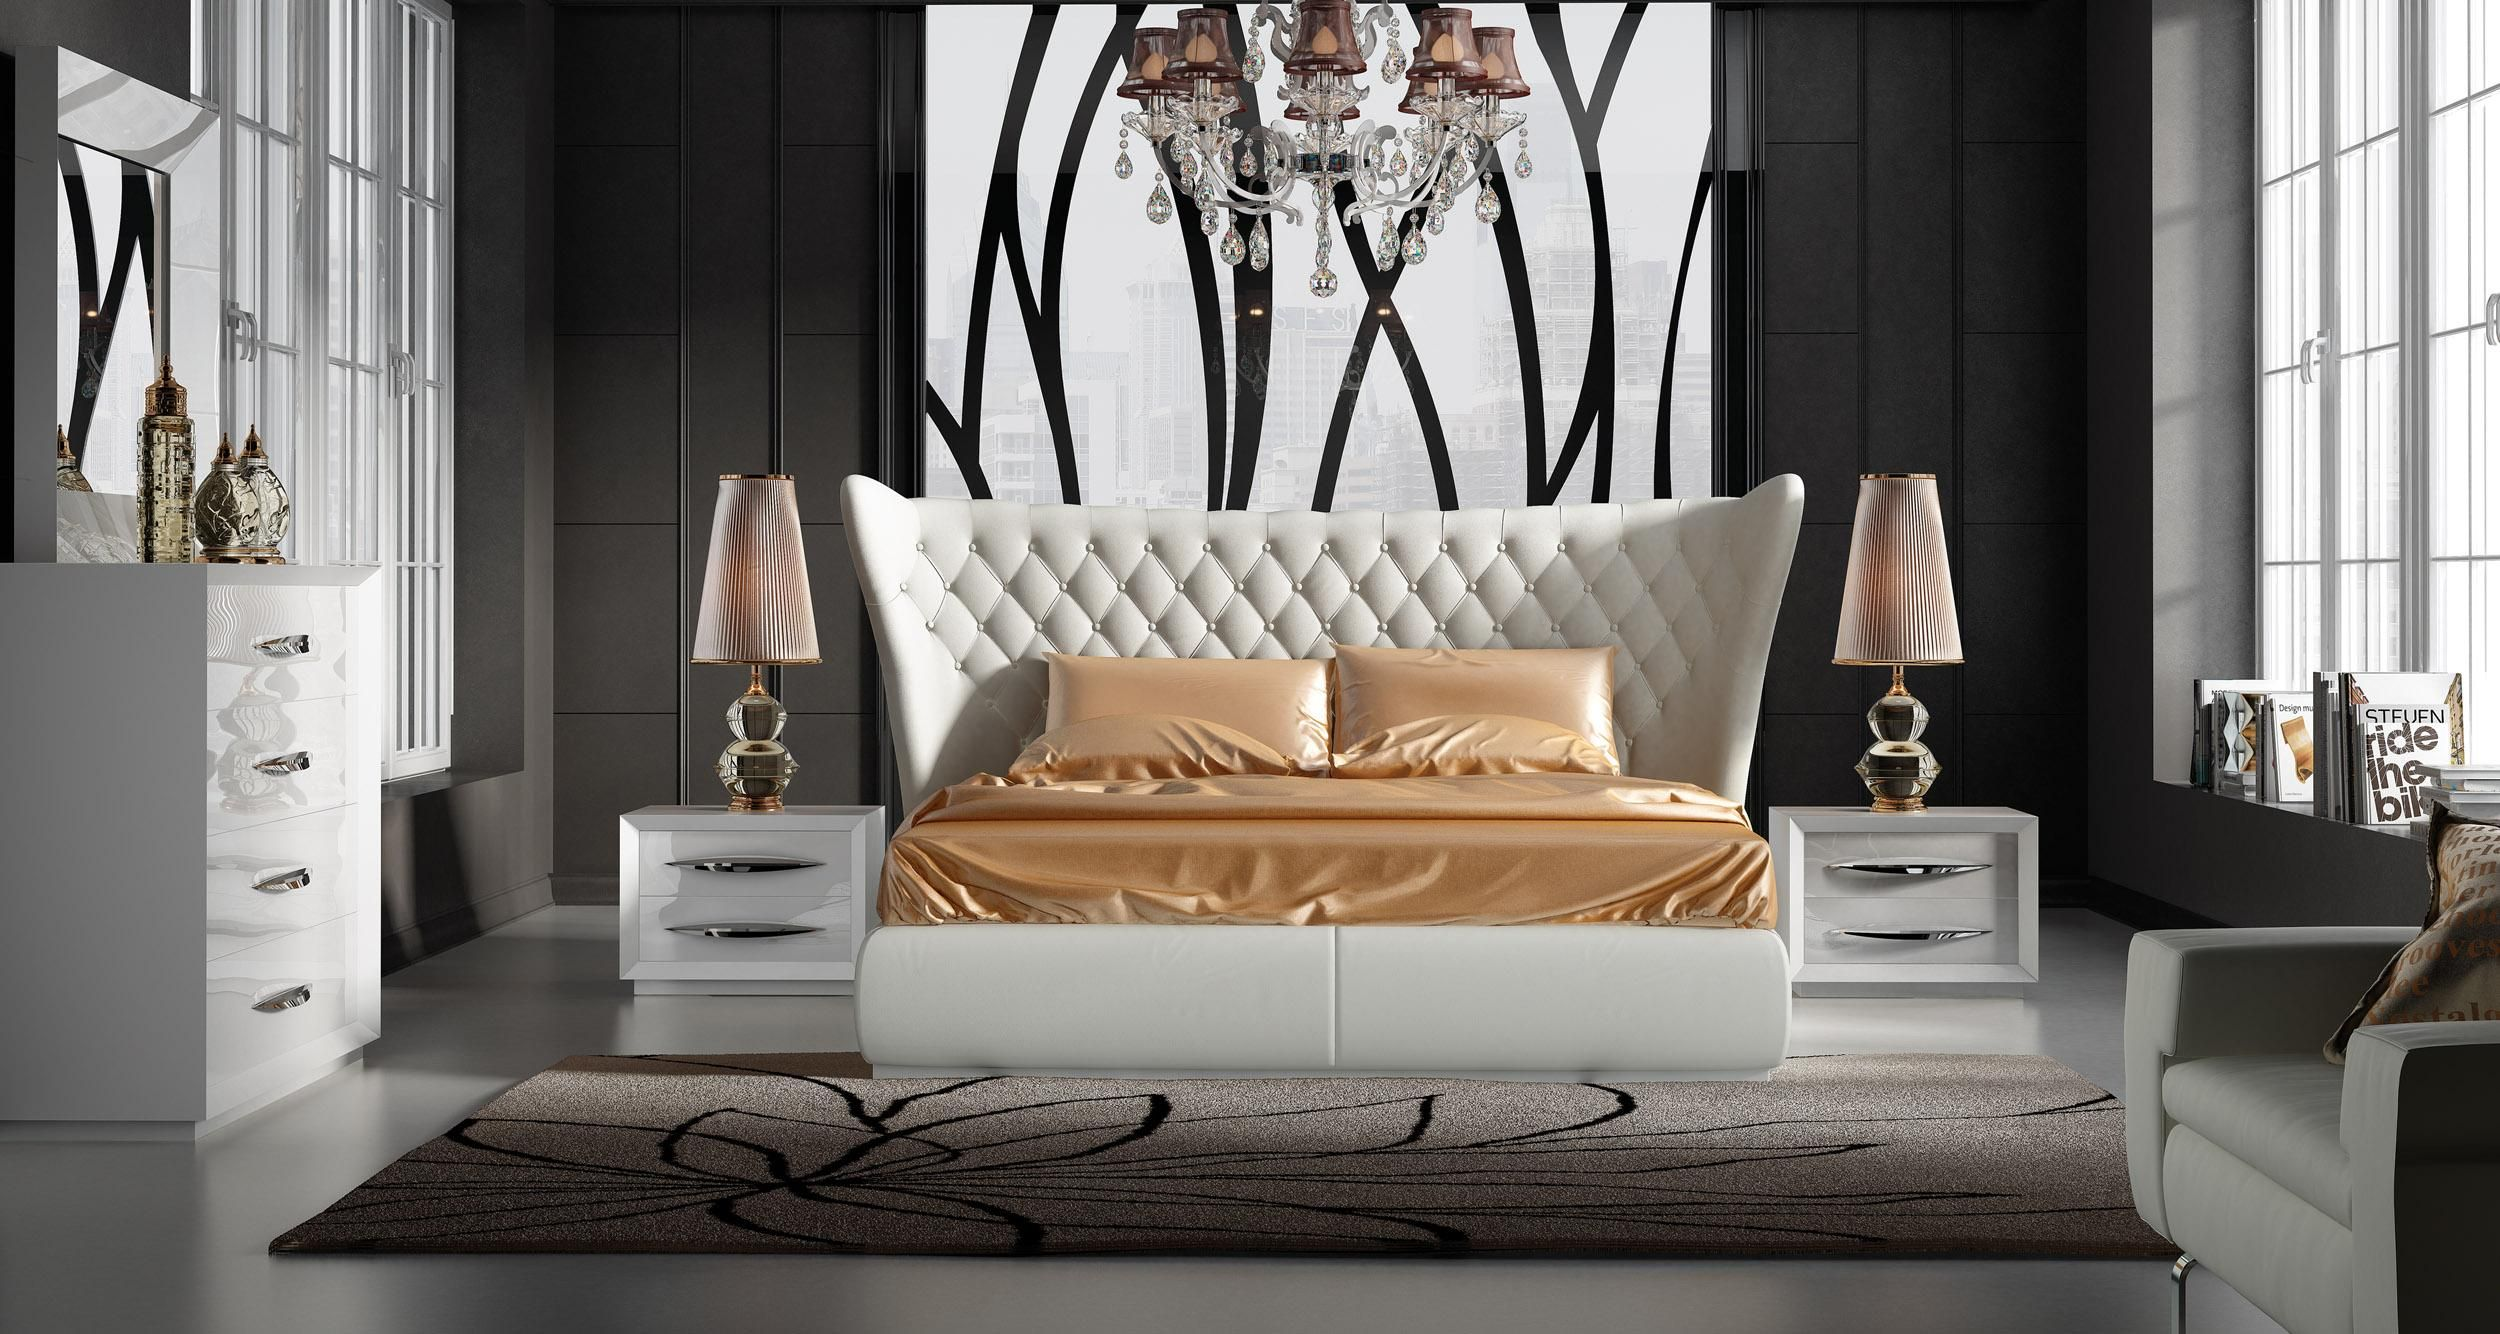 Stylish Leather Luxury Bedroom Furniture Sets | Luxury bedroom sets, Luxurious  bedrooms, Contemporary bedroom sets